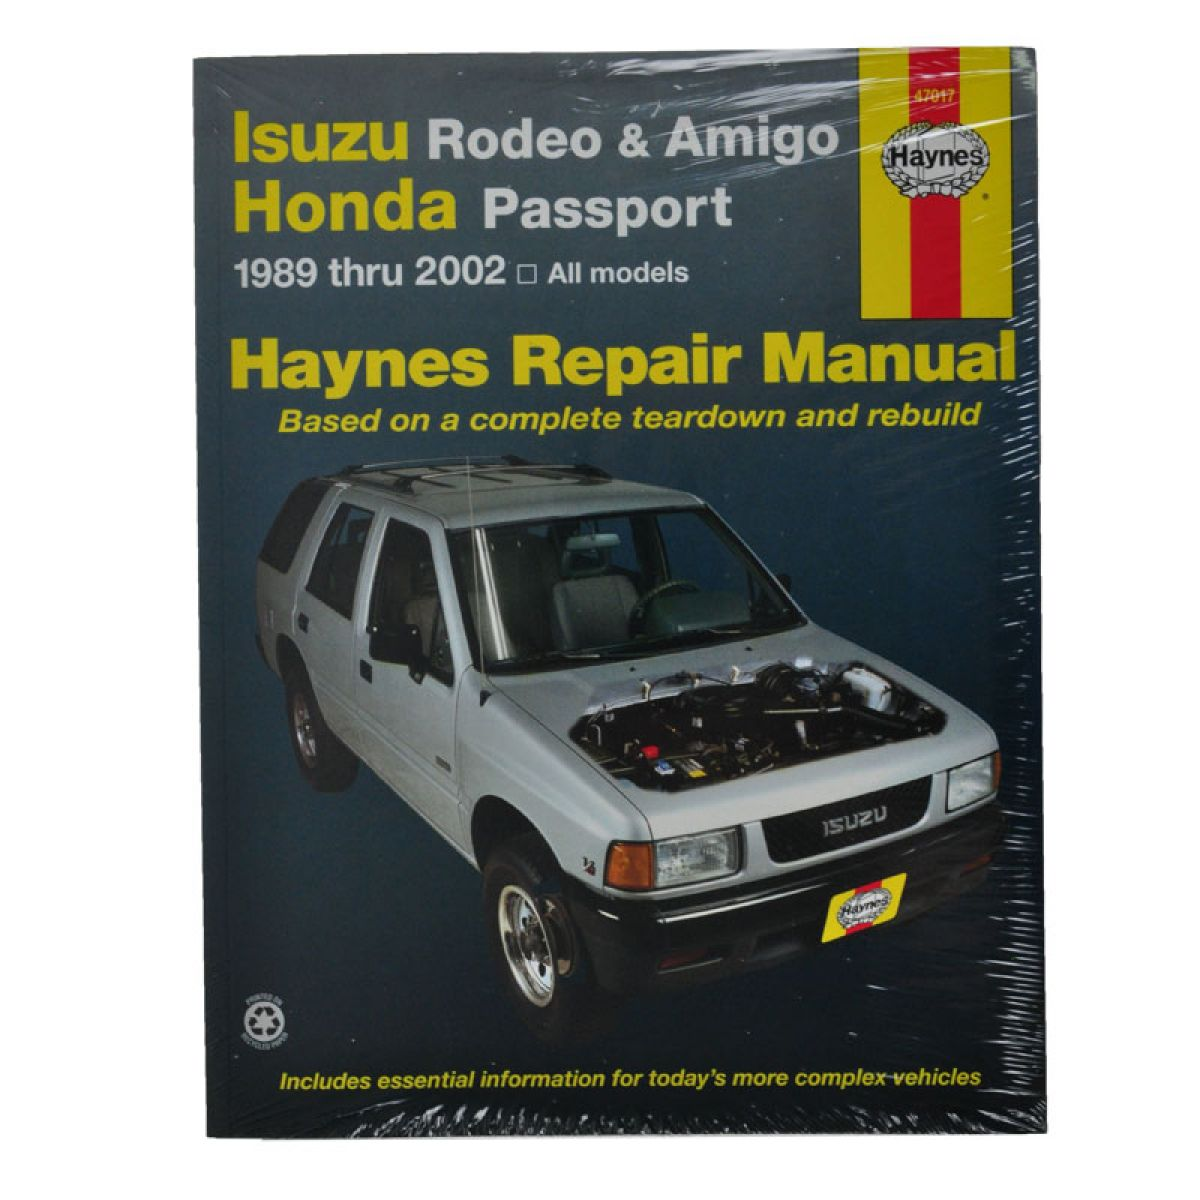 Haynes Repair Manual for Amigo Passport Rodeo 89 90 91-02